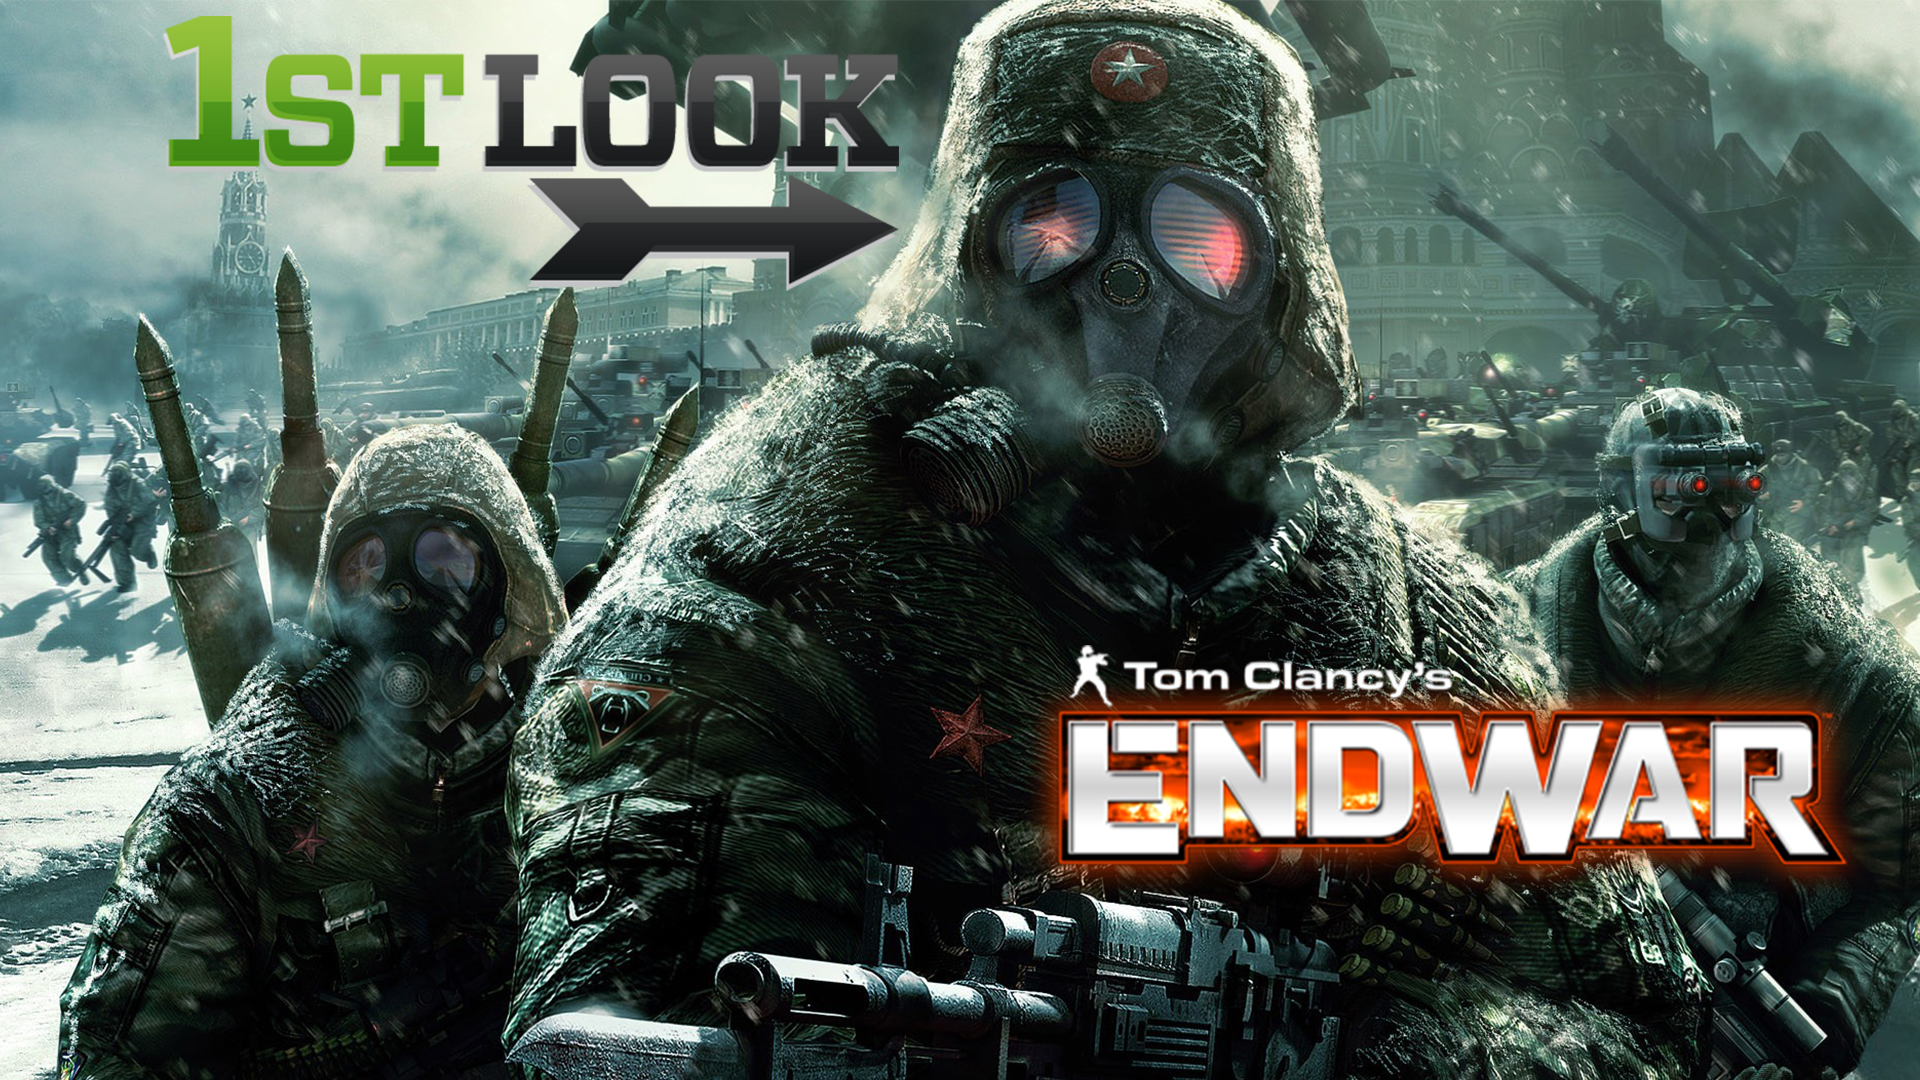 Tom Clancy's EndWar Online - First Look